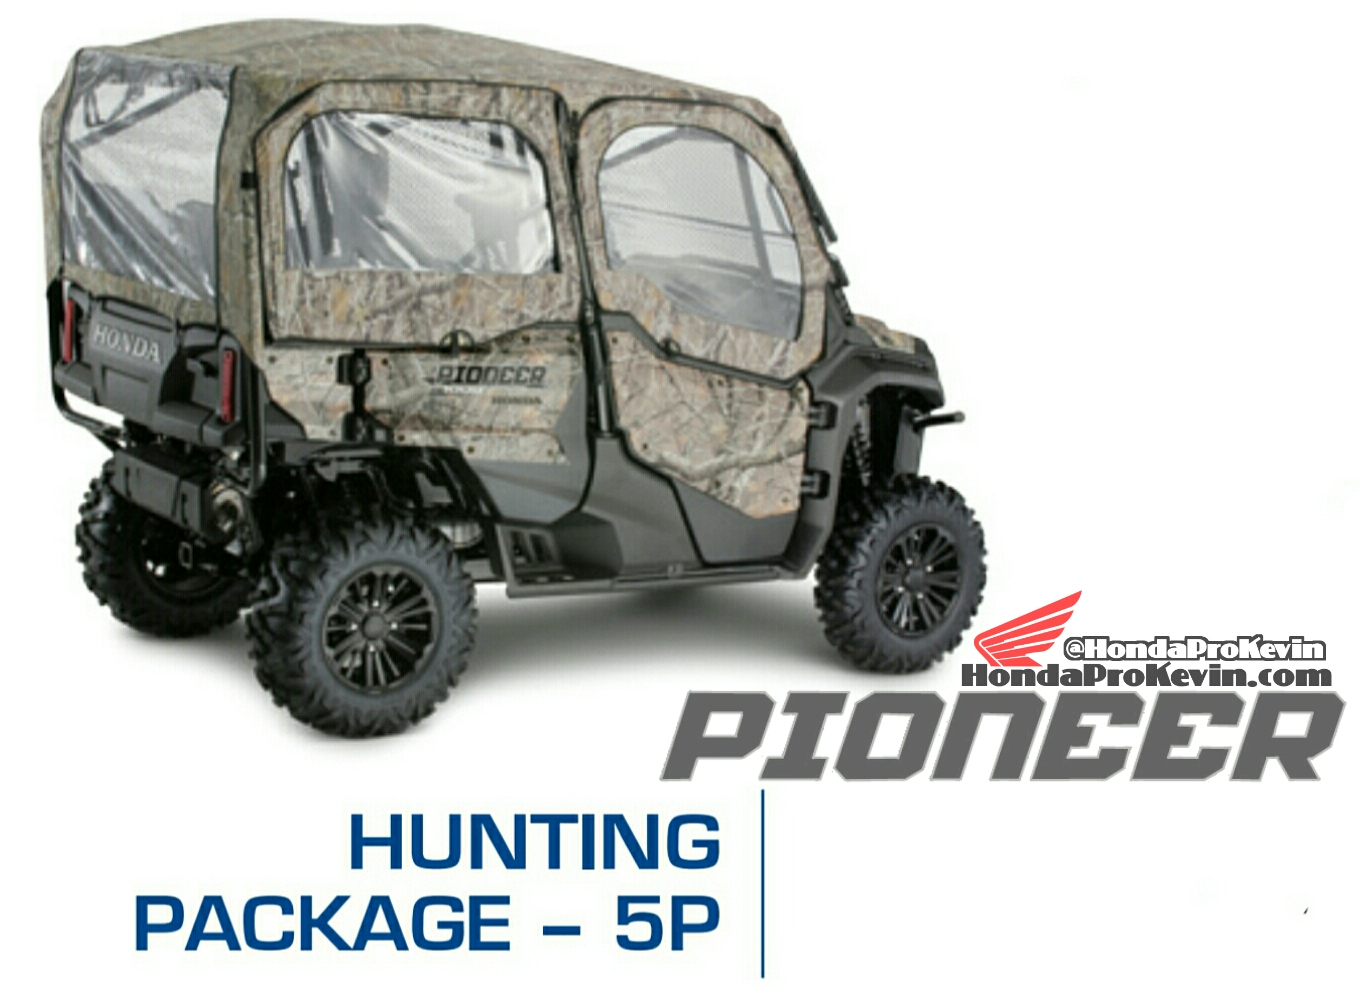 2018 Honda Pioneer 1000-5 Hunting Package - Accessories - Parts - SxS / UTV / Side by Side ATV